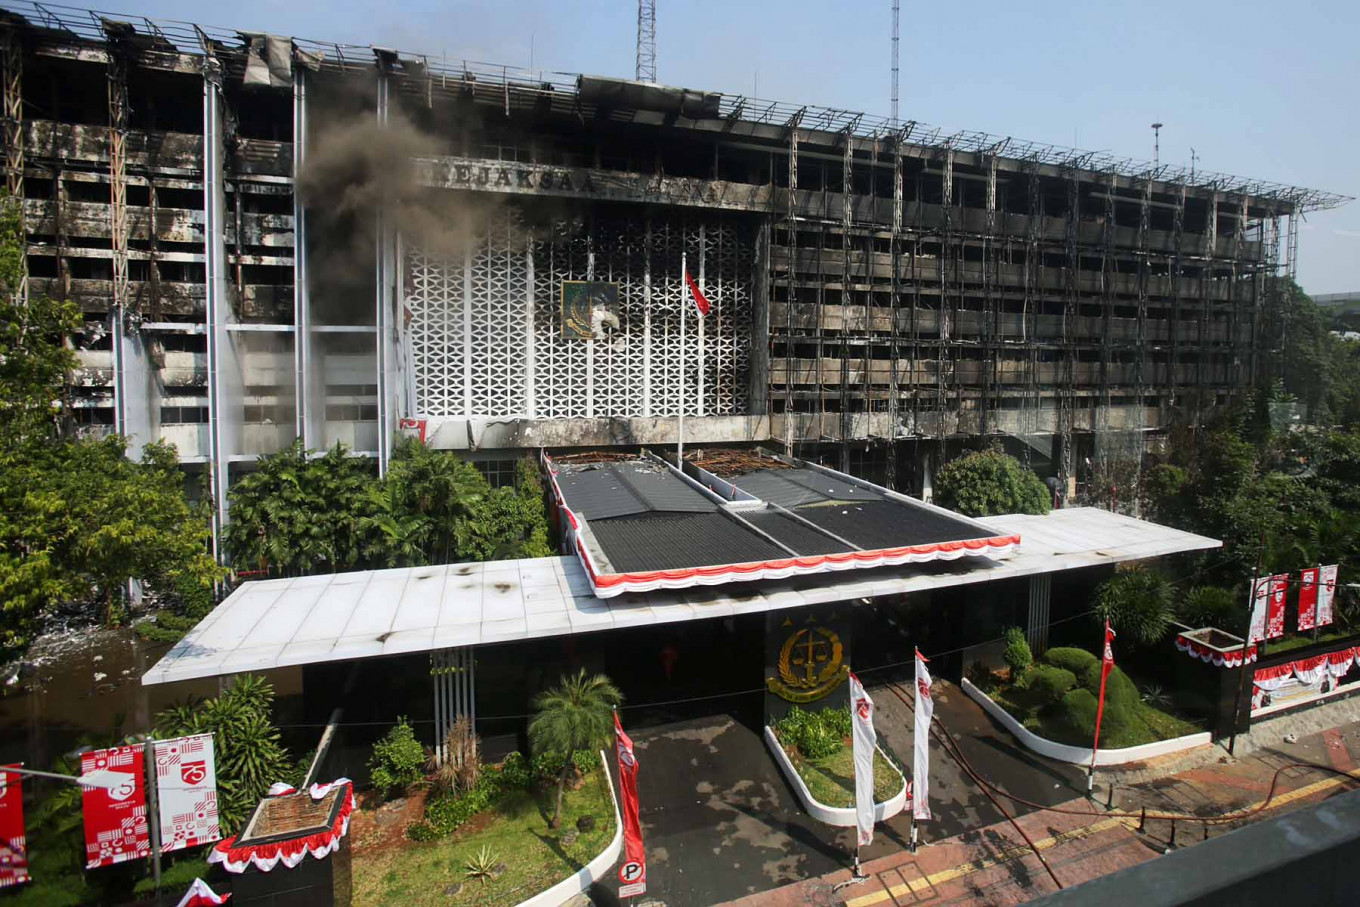 Custodian of funds?: Police investigate janitor's bank account in AGO fire case